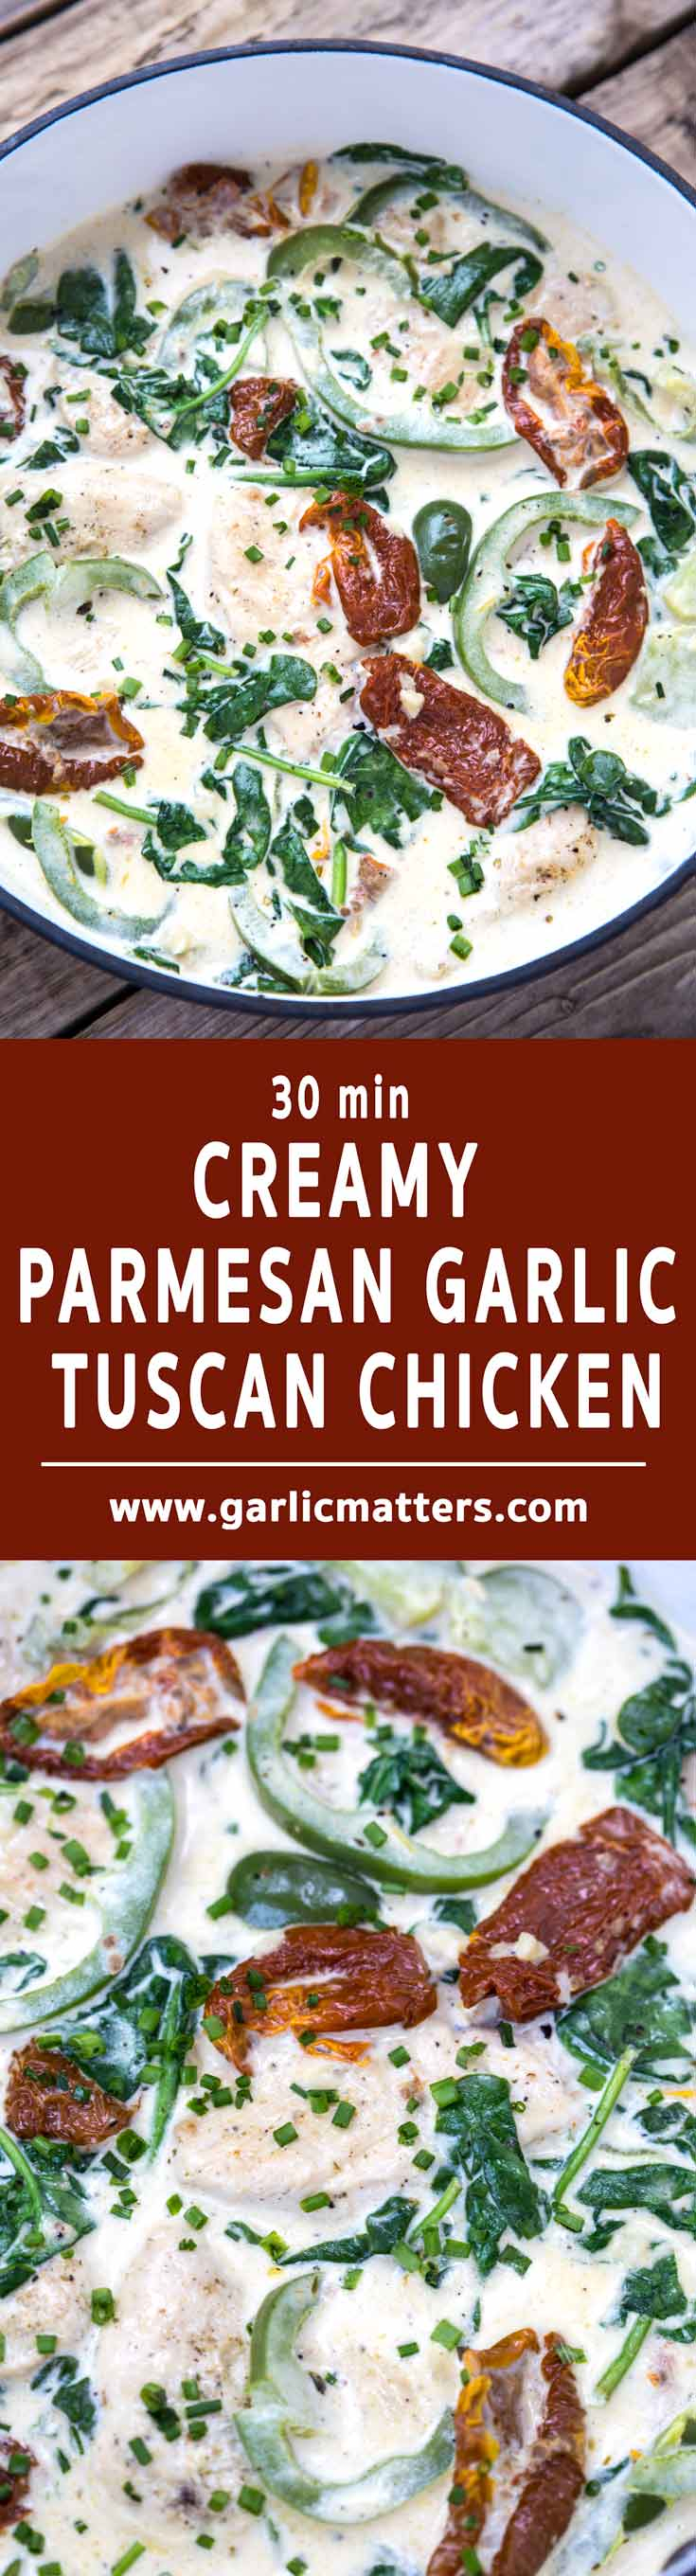 30 min Creamy Tuscan Parmesan Garlic Chicken recipe - perfect for lunch or dinner with pasta or couscous.